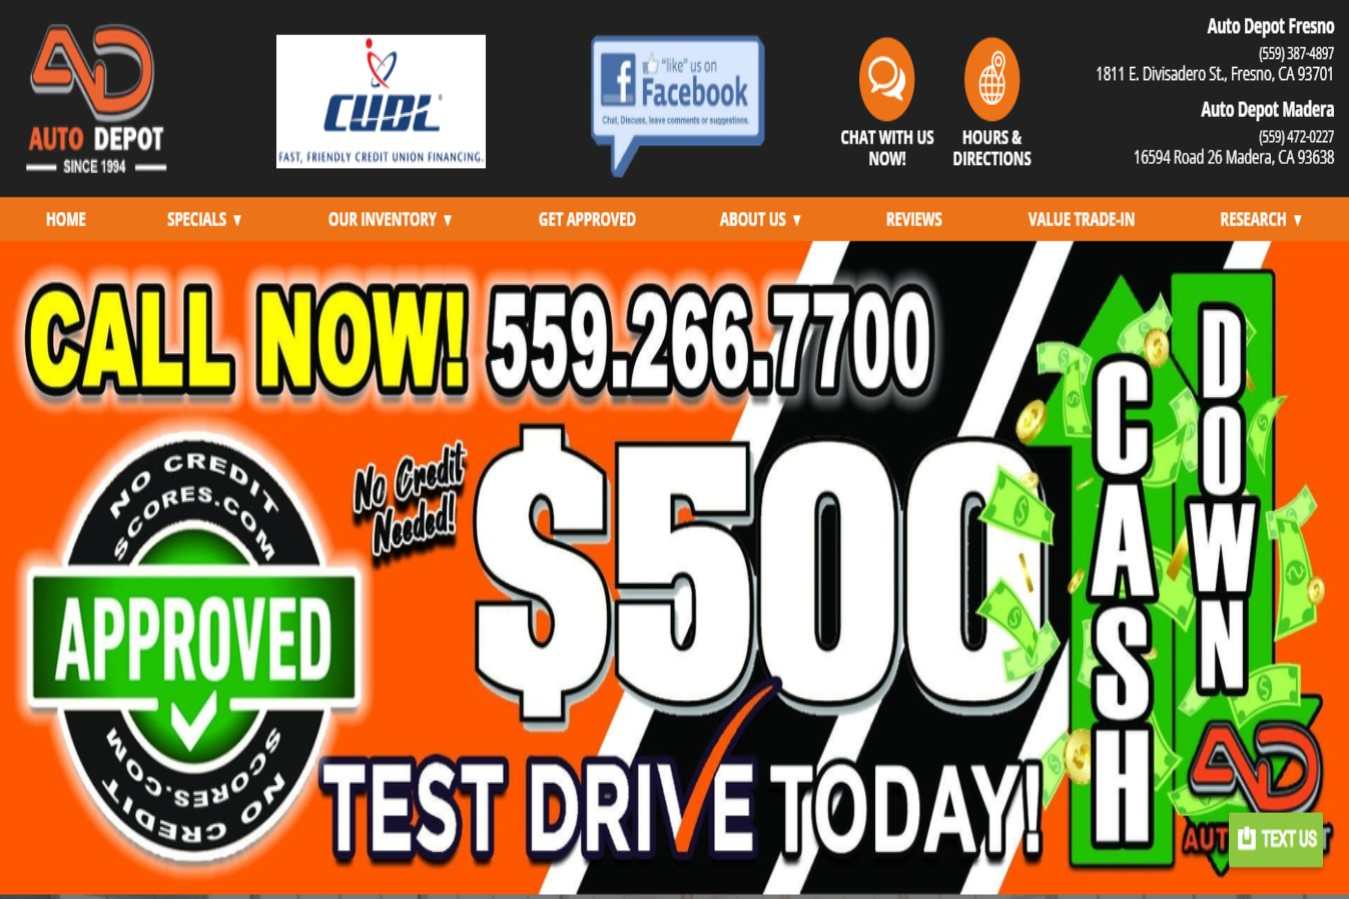 Top-rated Car Dealership in Fresno, CA